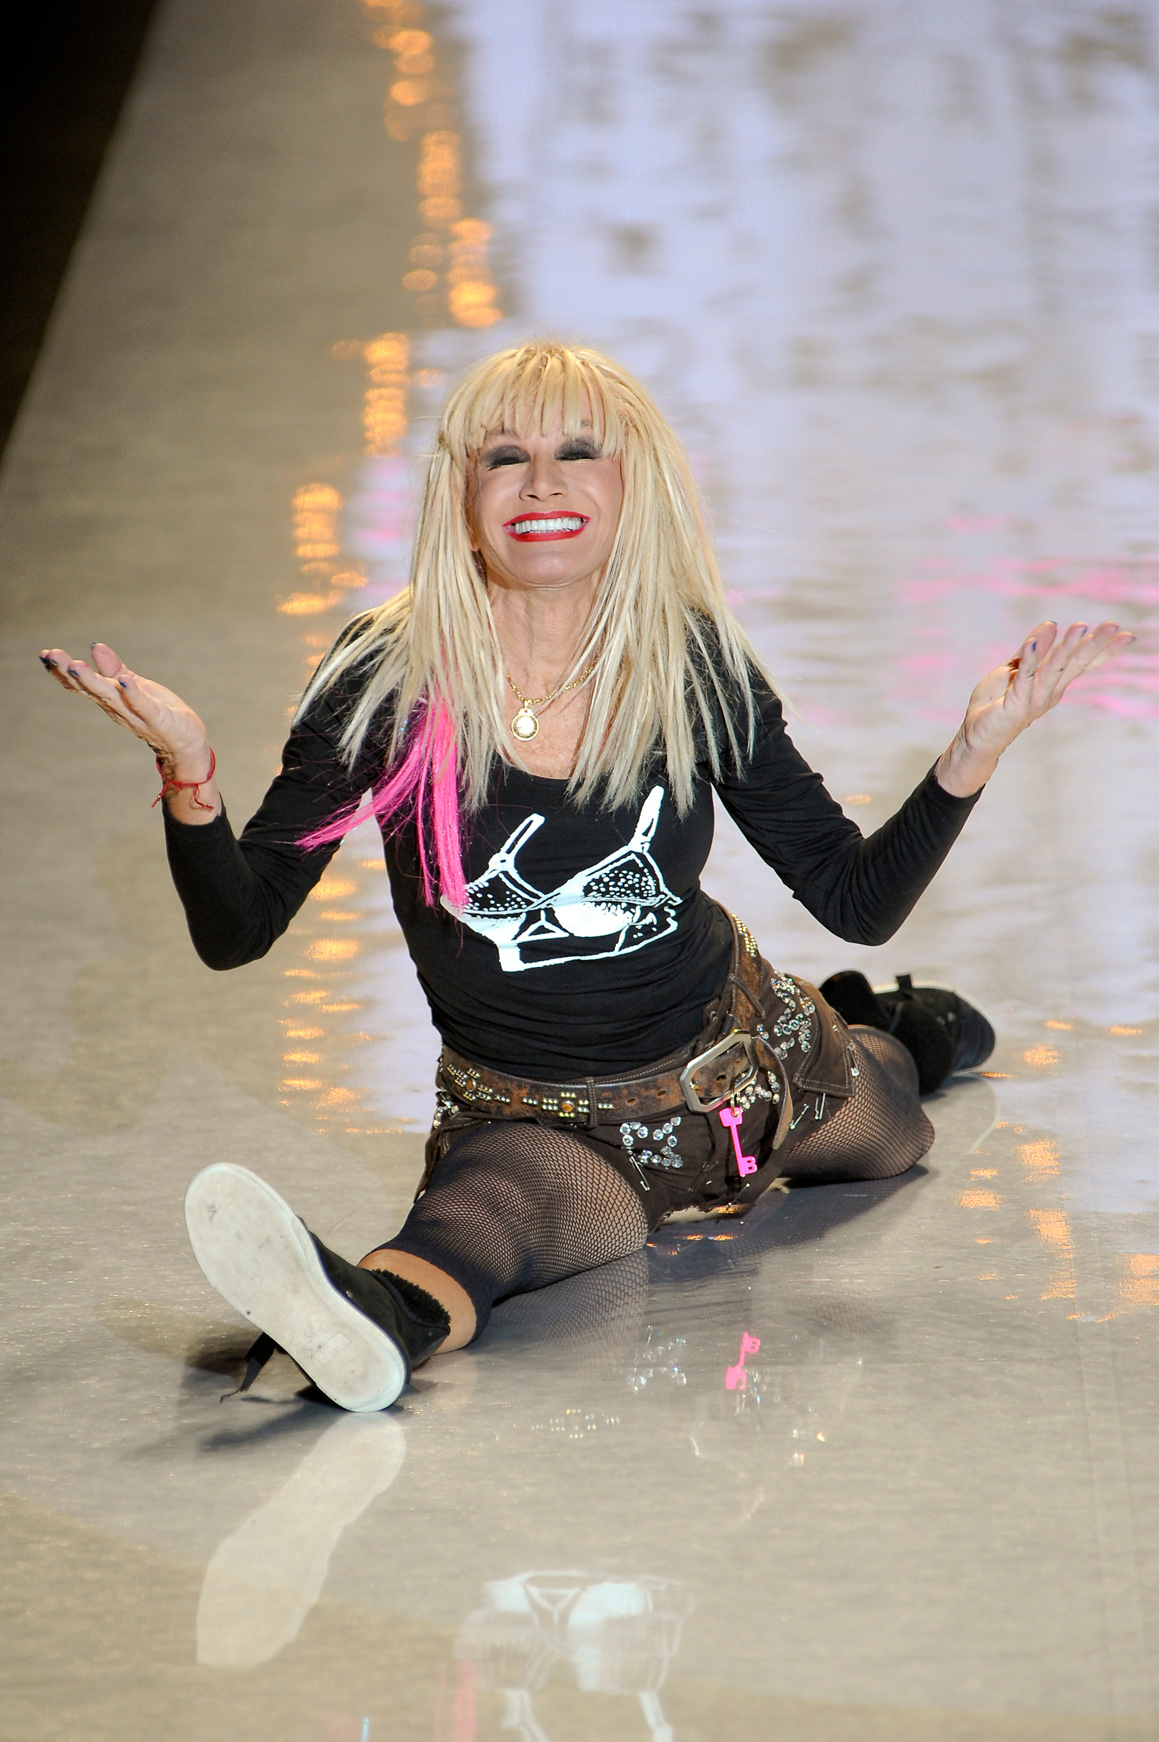 jognson Change of Plans: Betsey Johnson Will Be Showing At New York Fashion Week After All